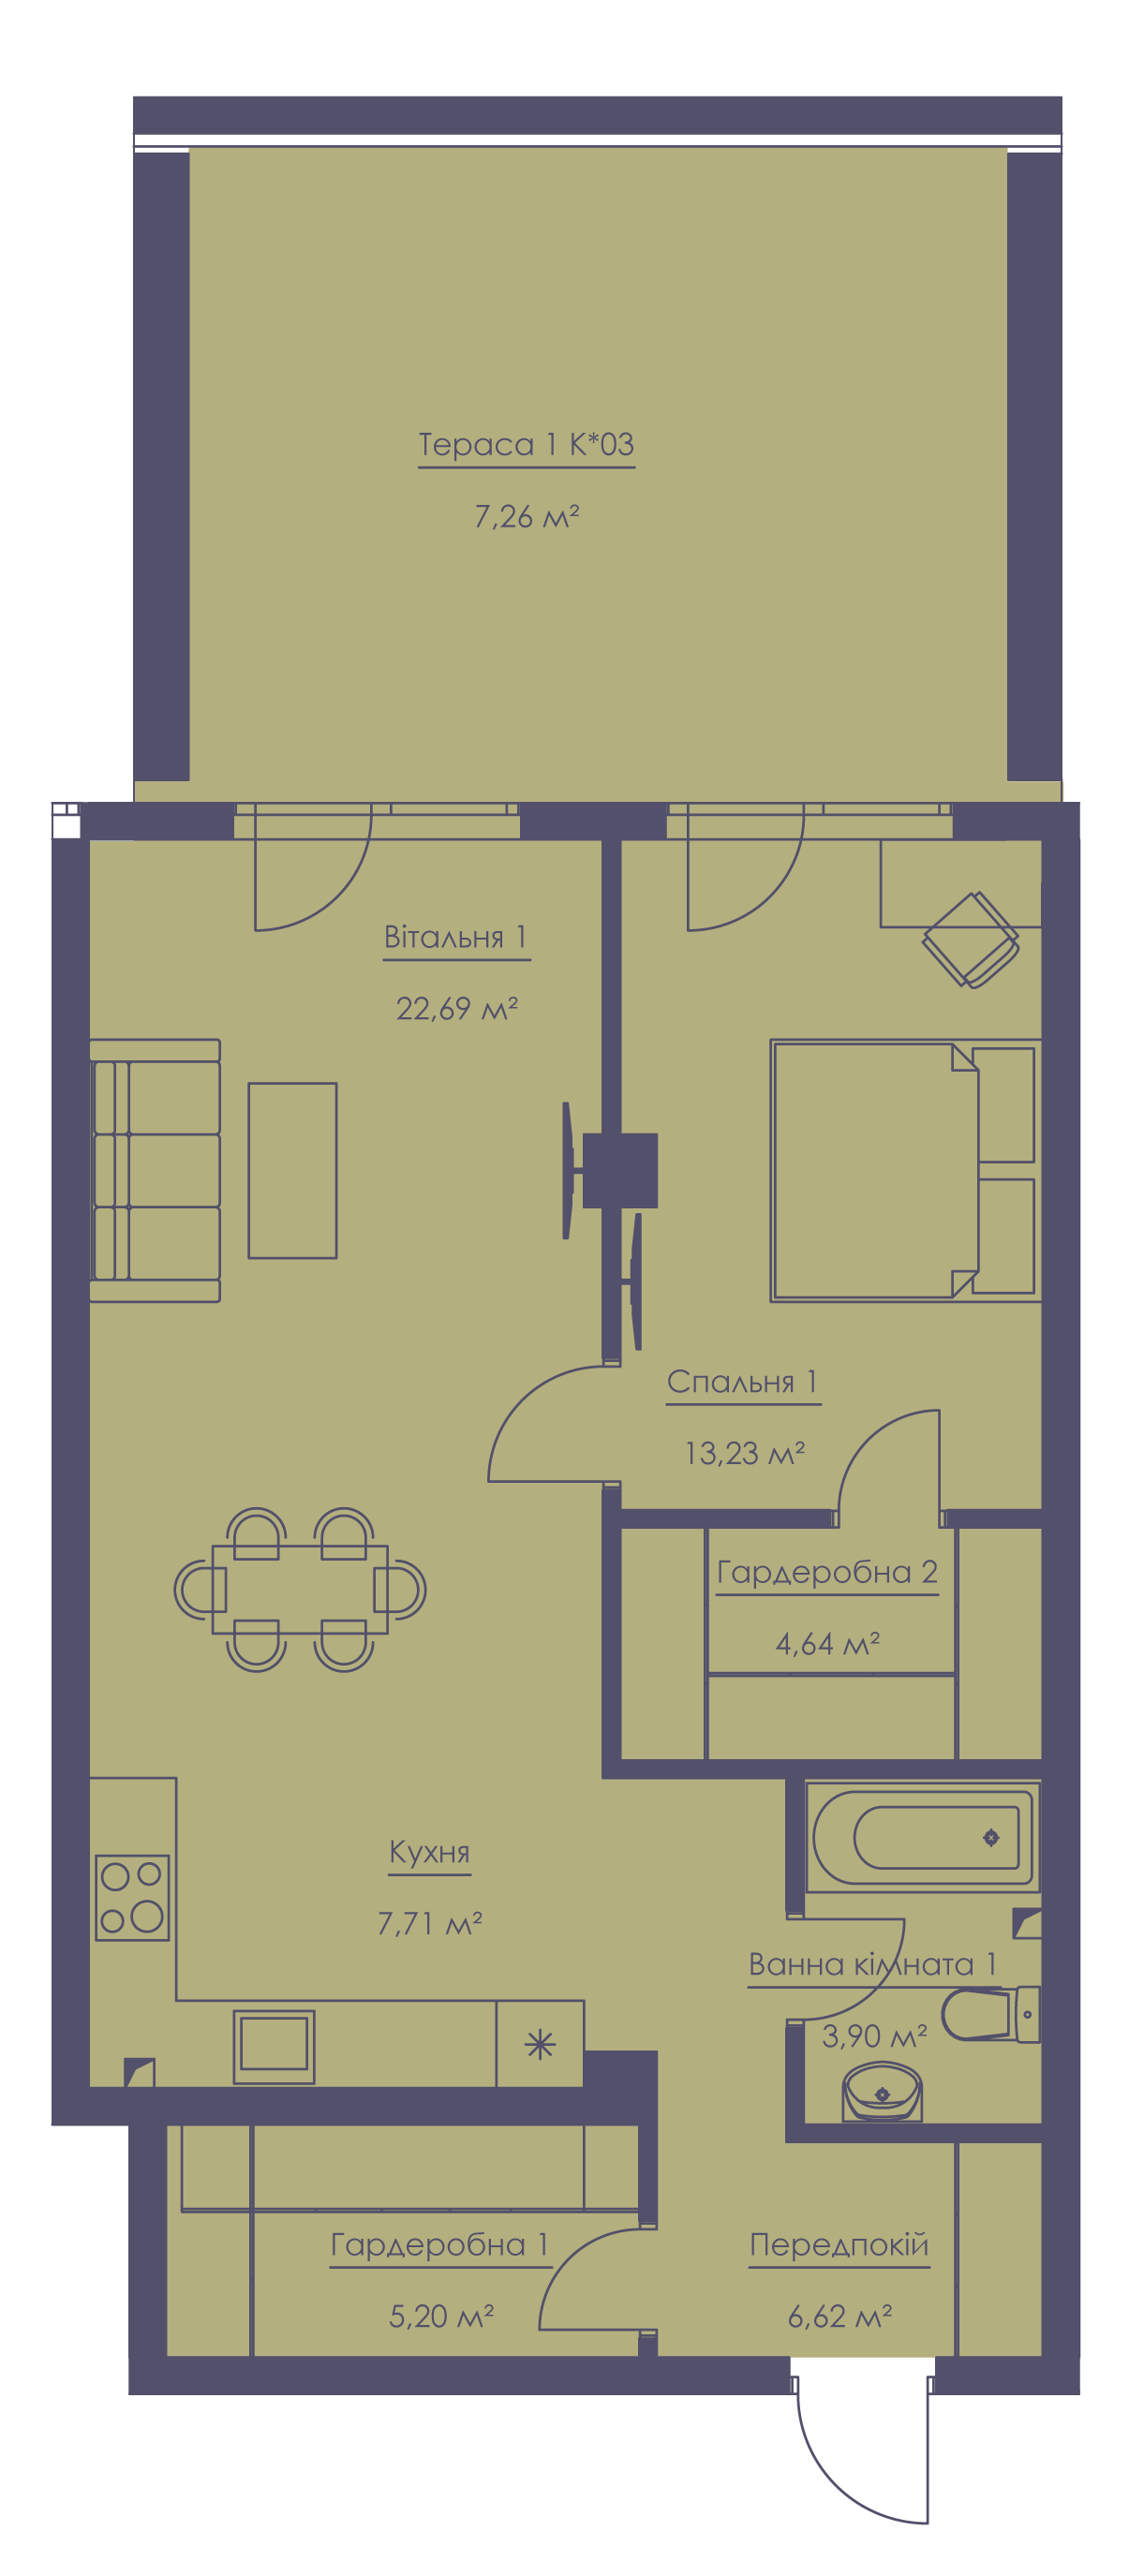 Apartment layout KV_9_1.2zh_1_1_9-1